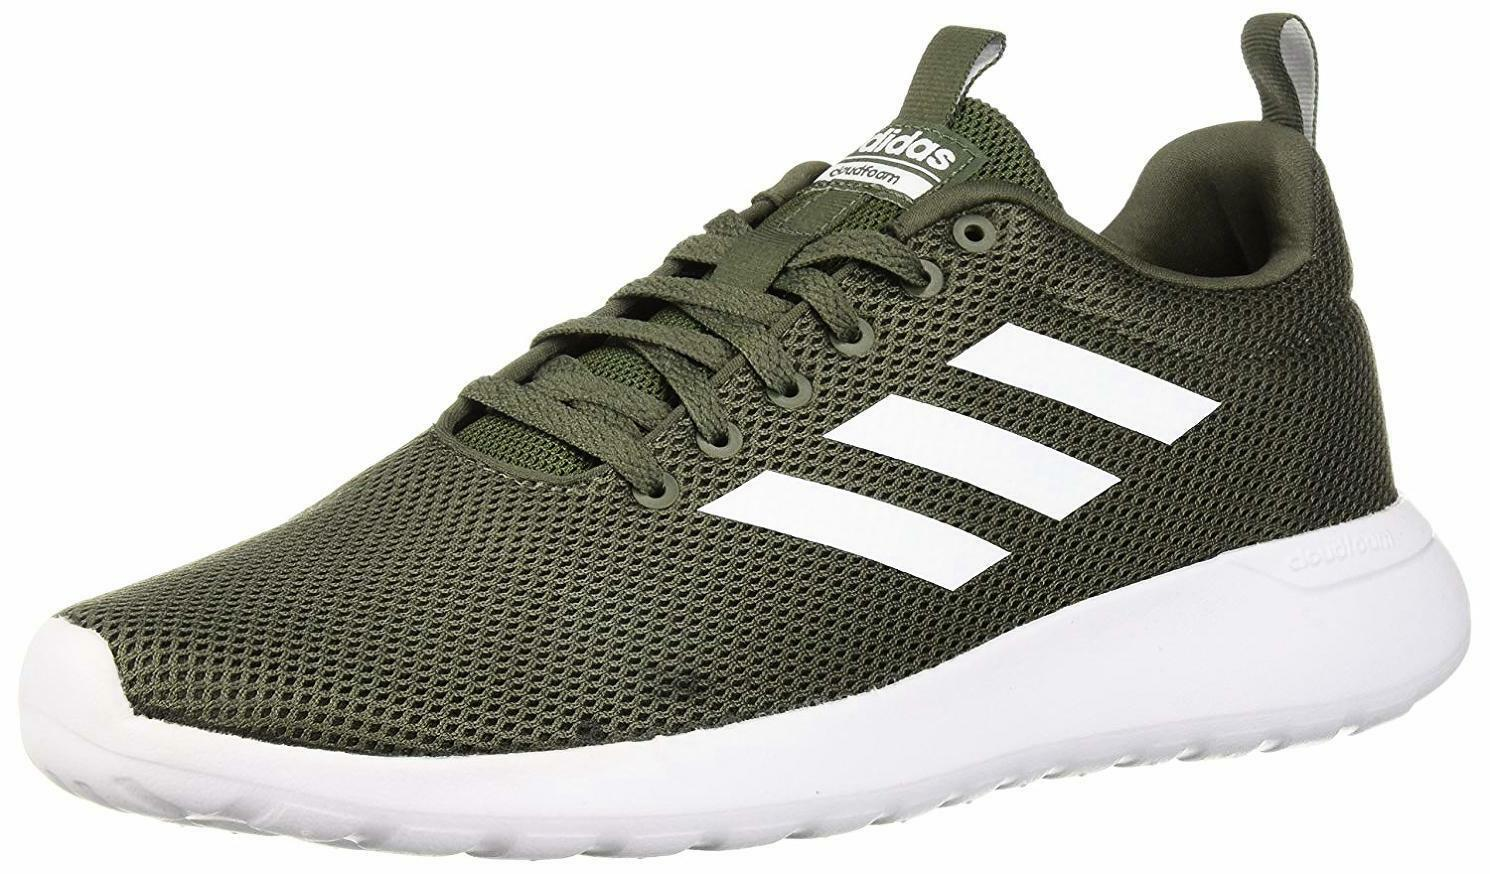 Adidas Men's Lite Racer CLN Running shoes, - Choose SZ color